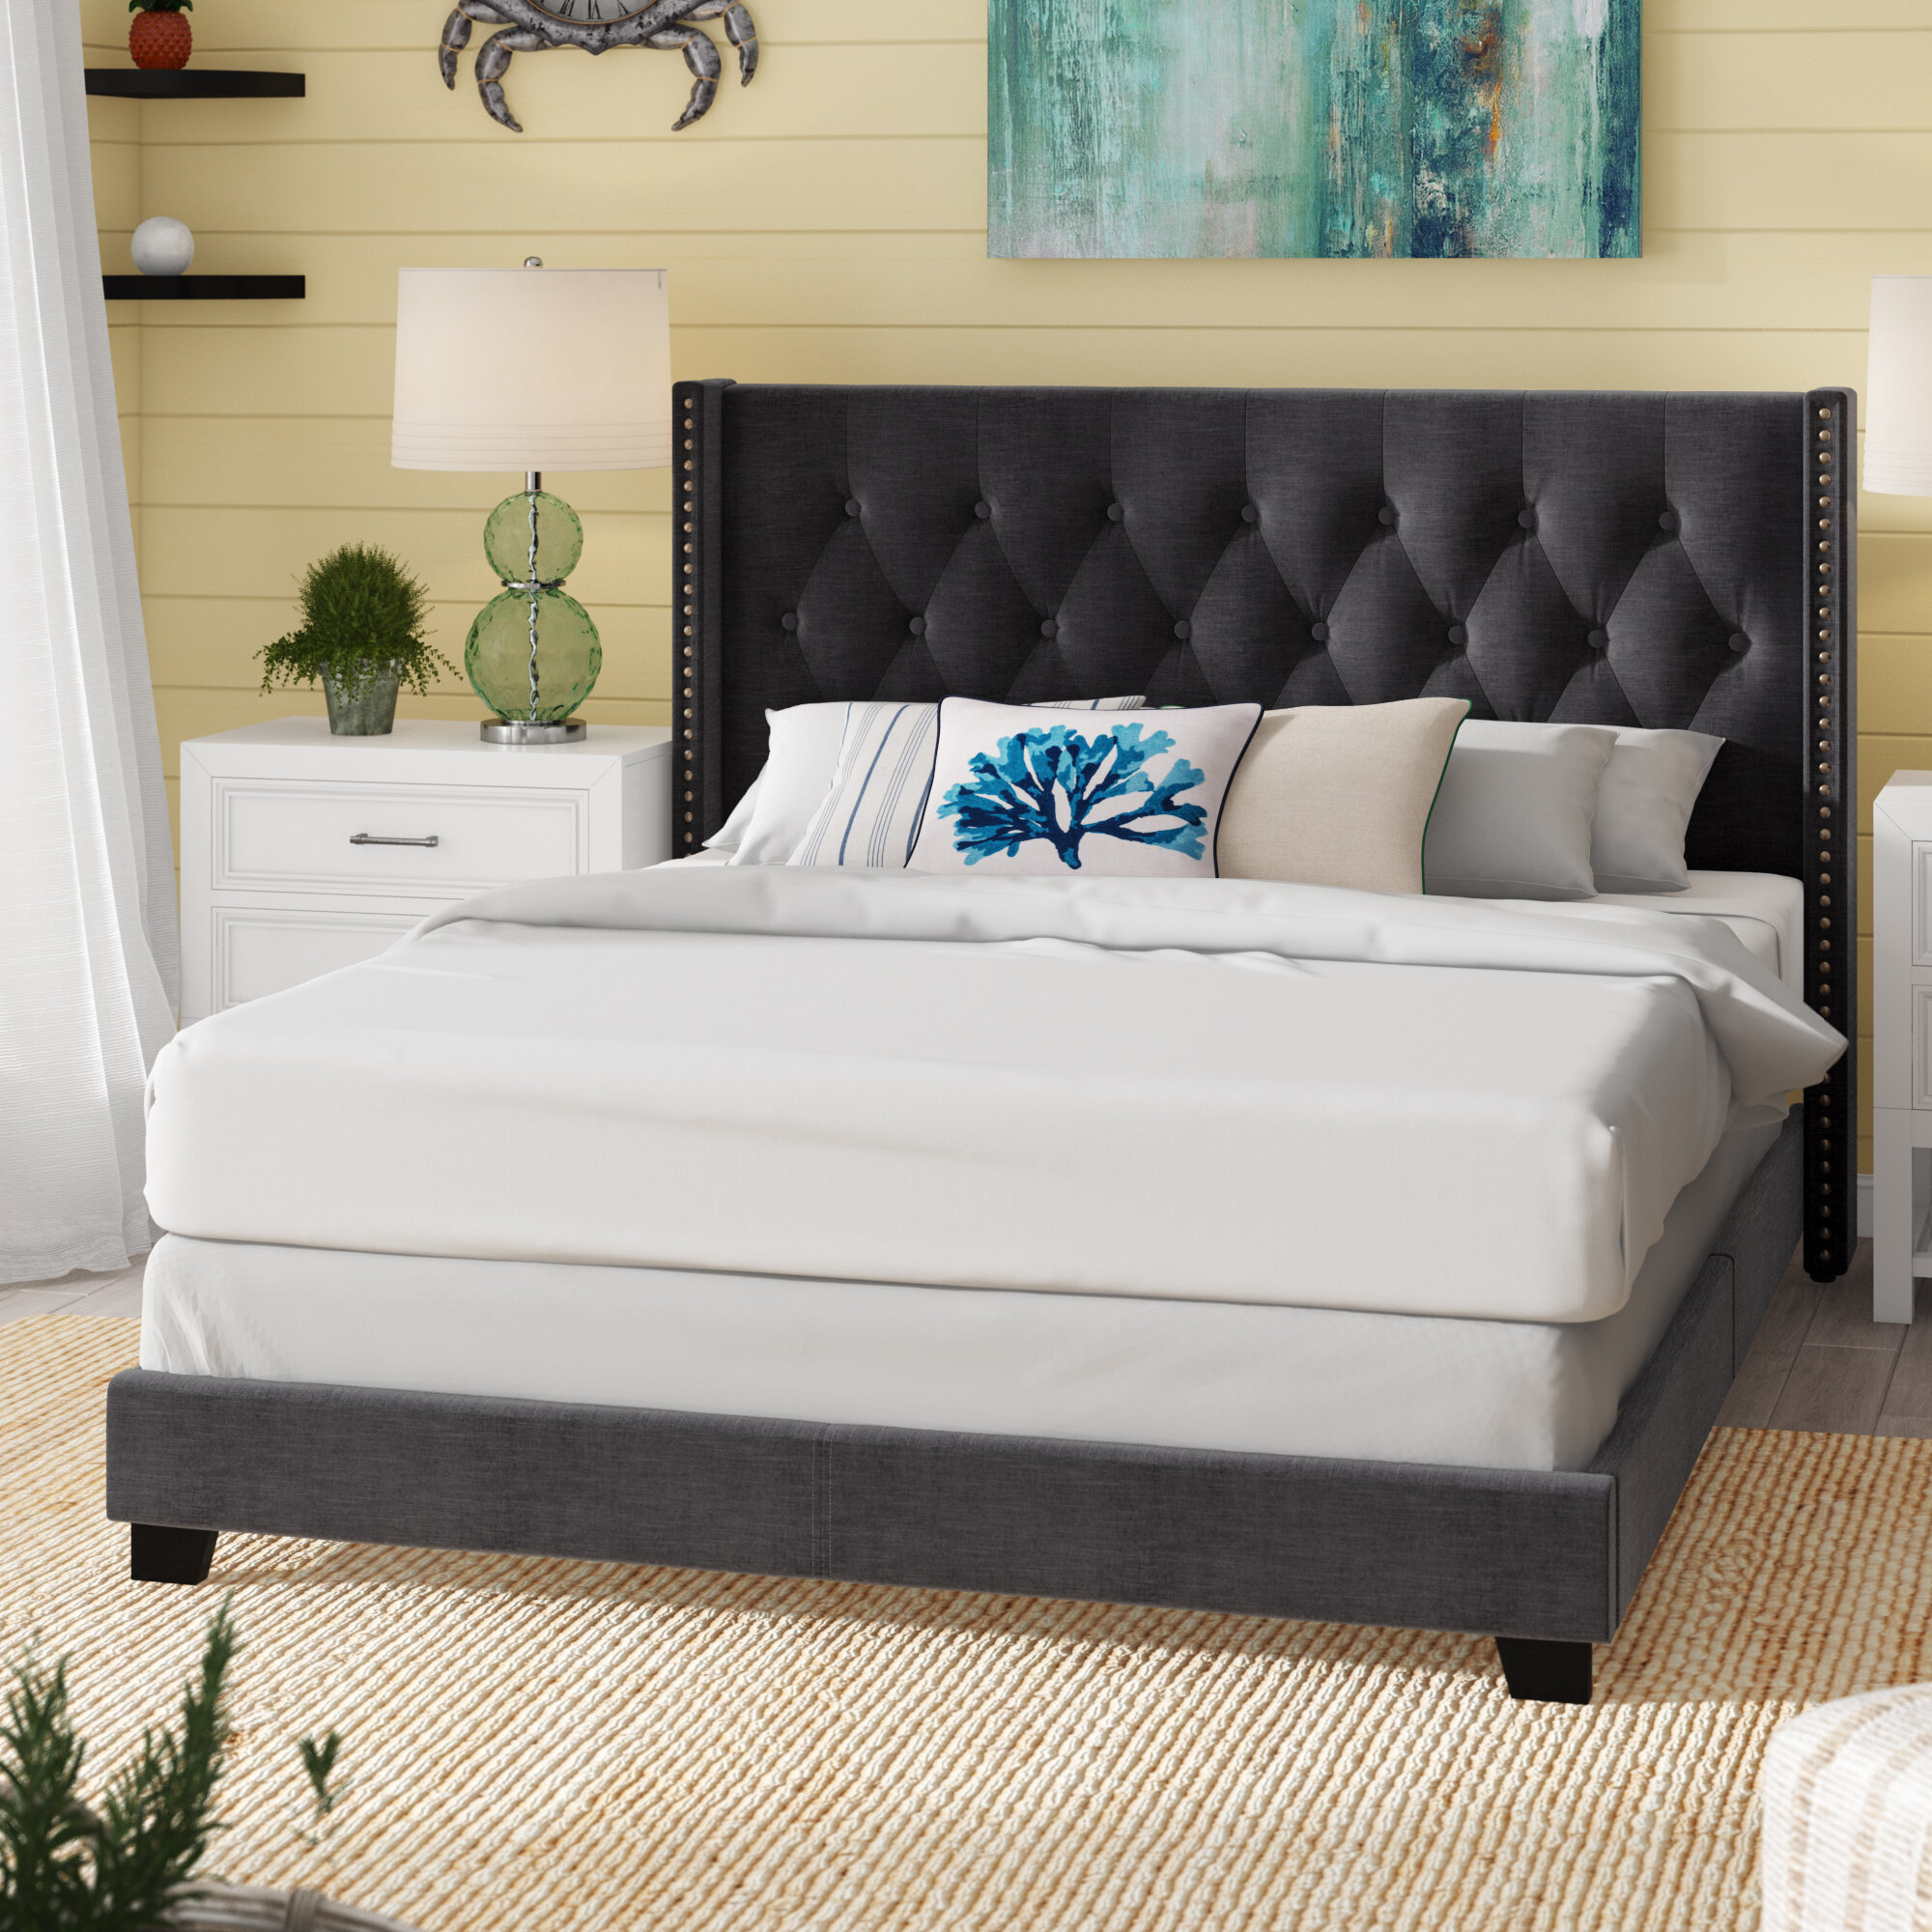 Charlton Home Anner Tufted Upholstered Standard Bed Reviews Wayfair Ca